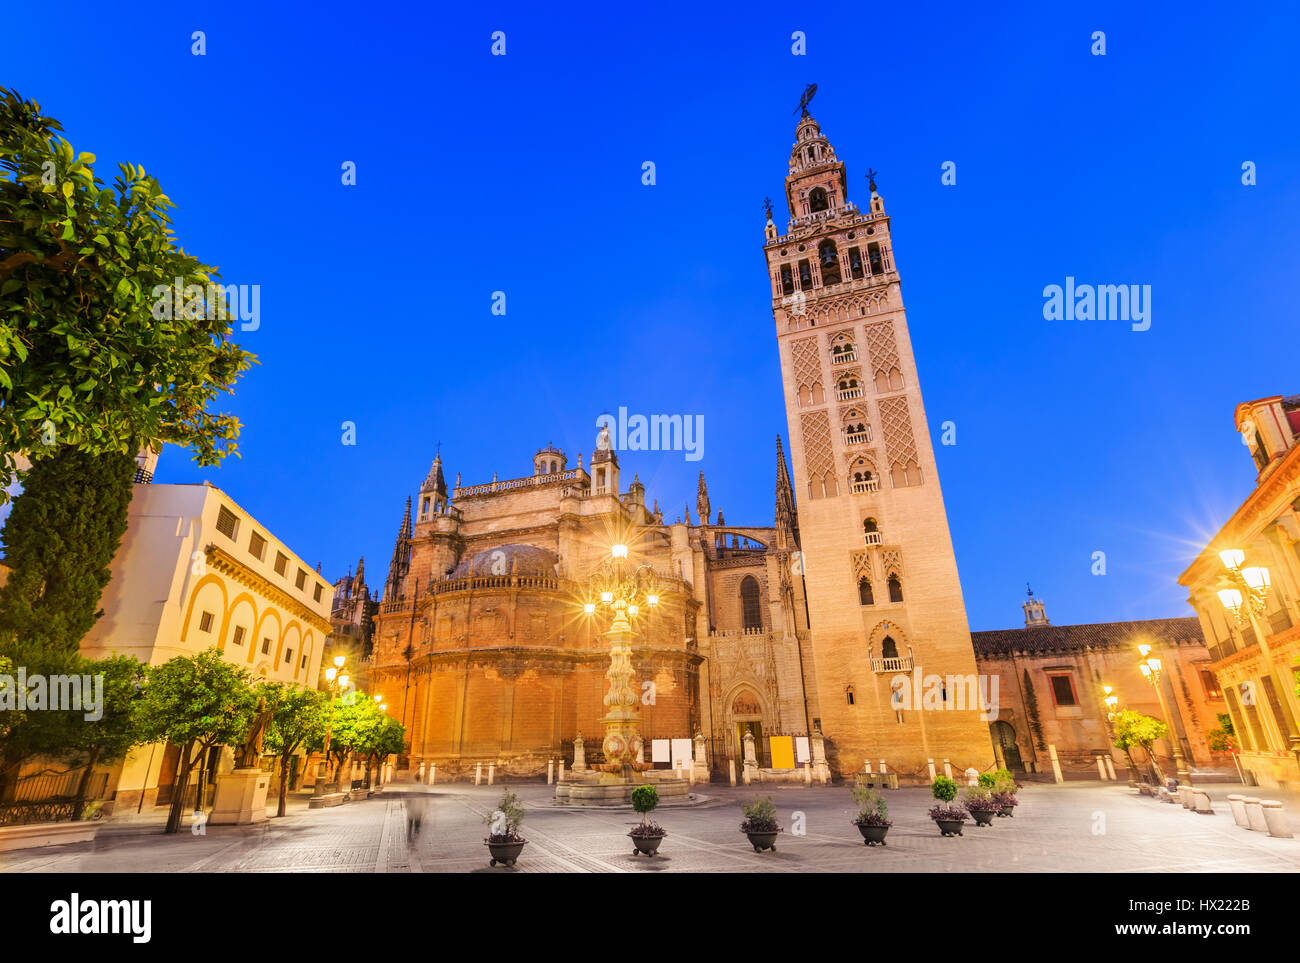 Seville, Spain. Cathedral of Saint Mary of the See with the Giralda bell tower. - Stock Image